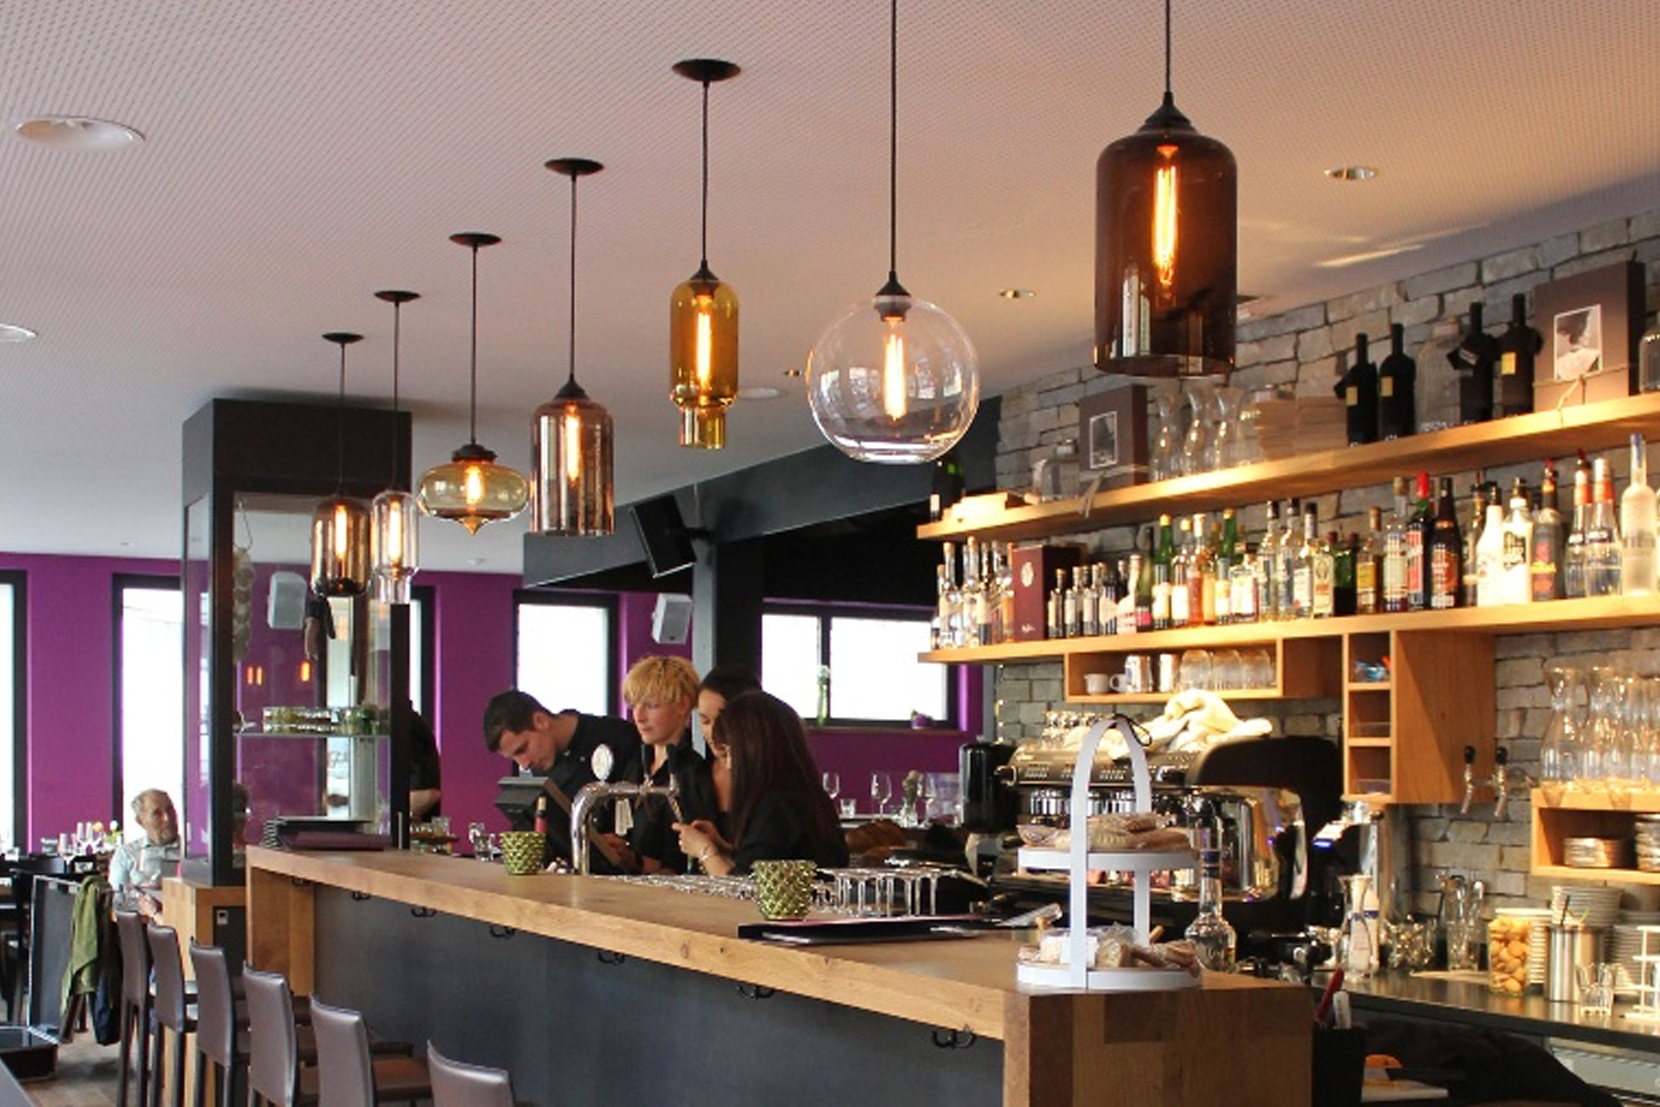 Lighting-Project-Pages_0009s_0003_Multi-Pendant-Modern-Restaurant-Lighting.png